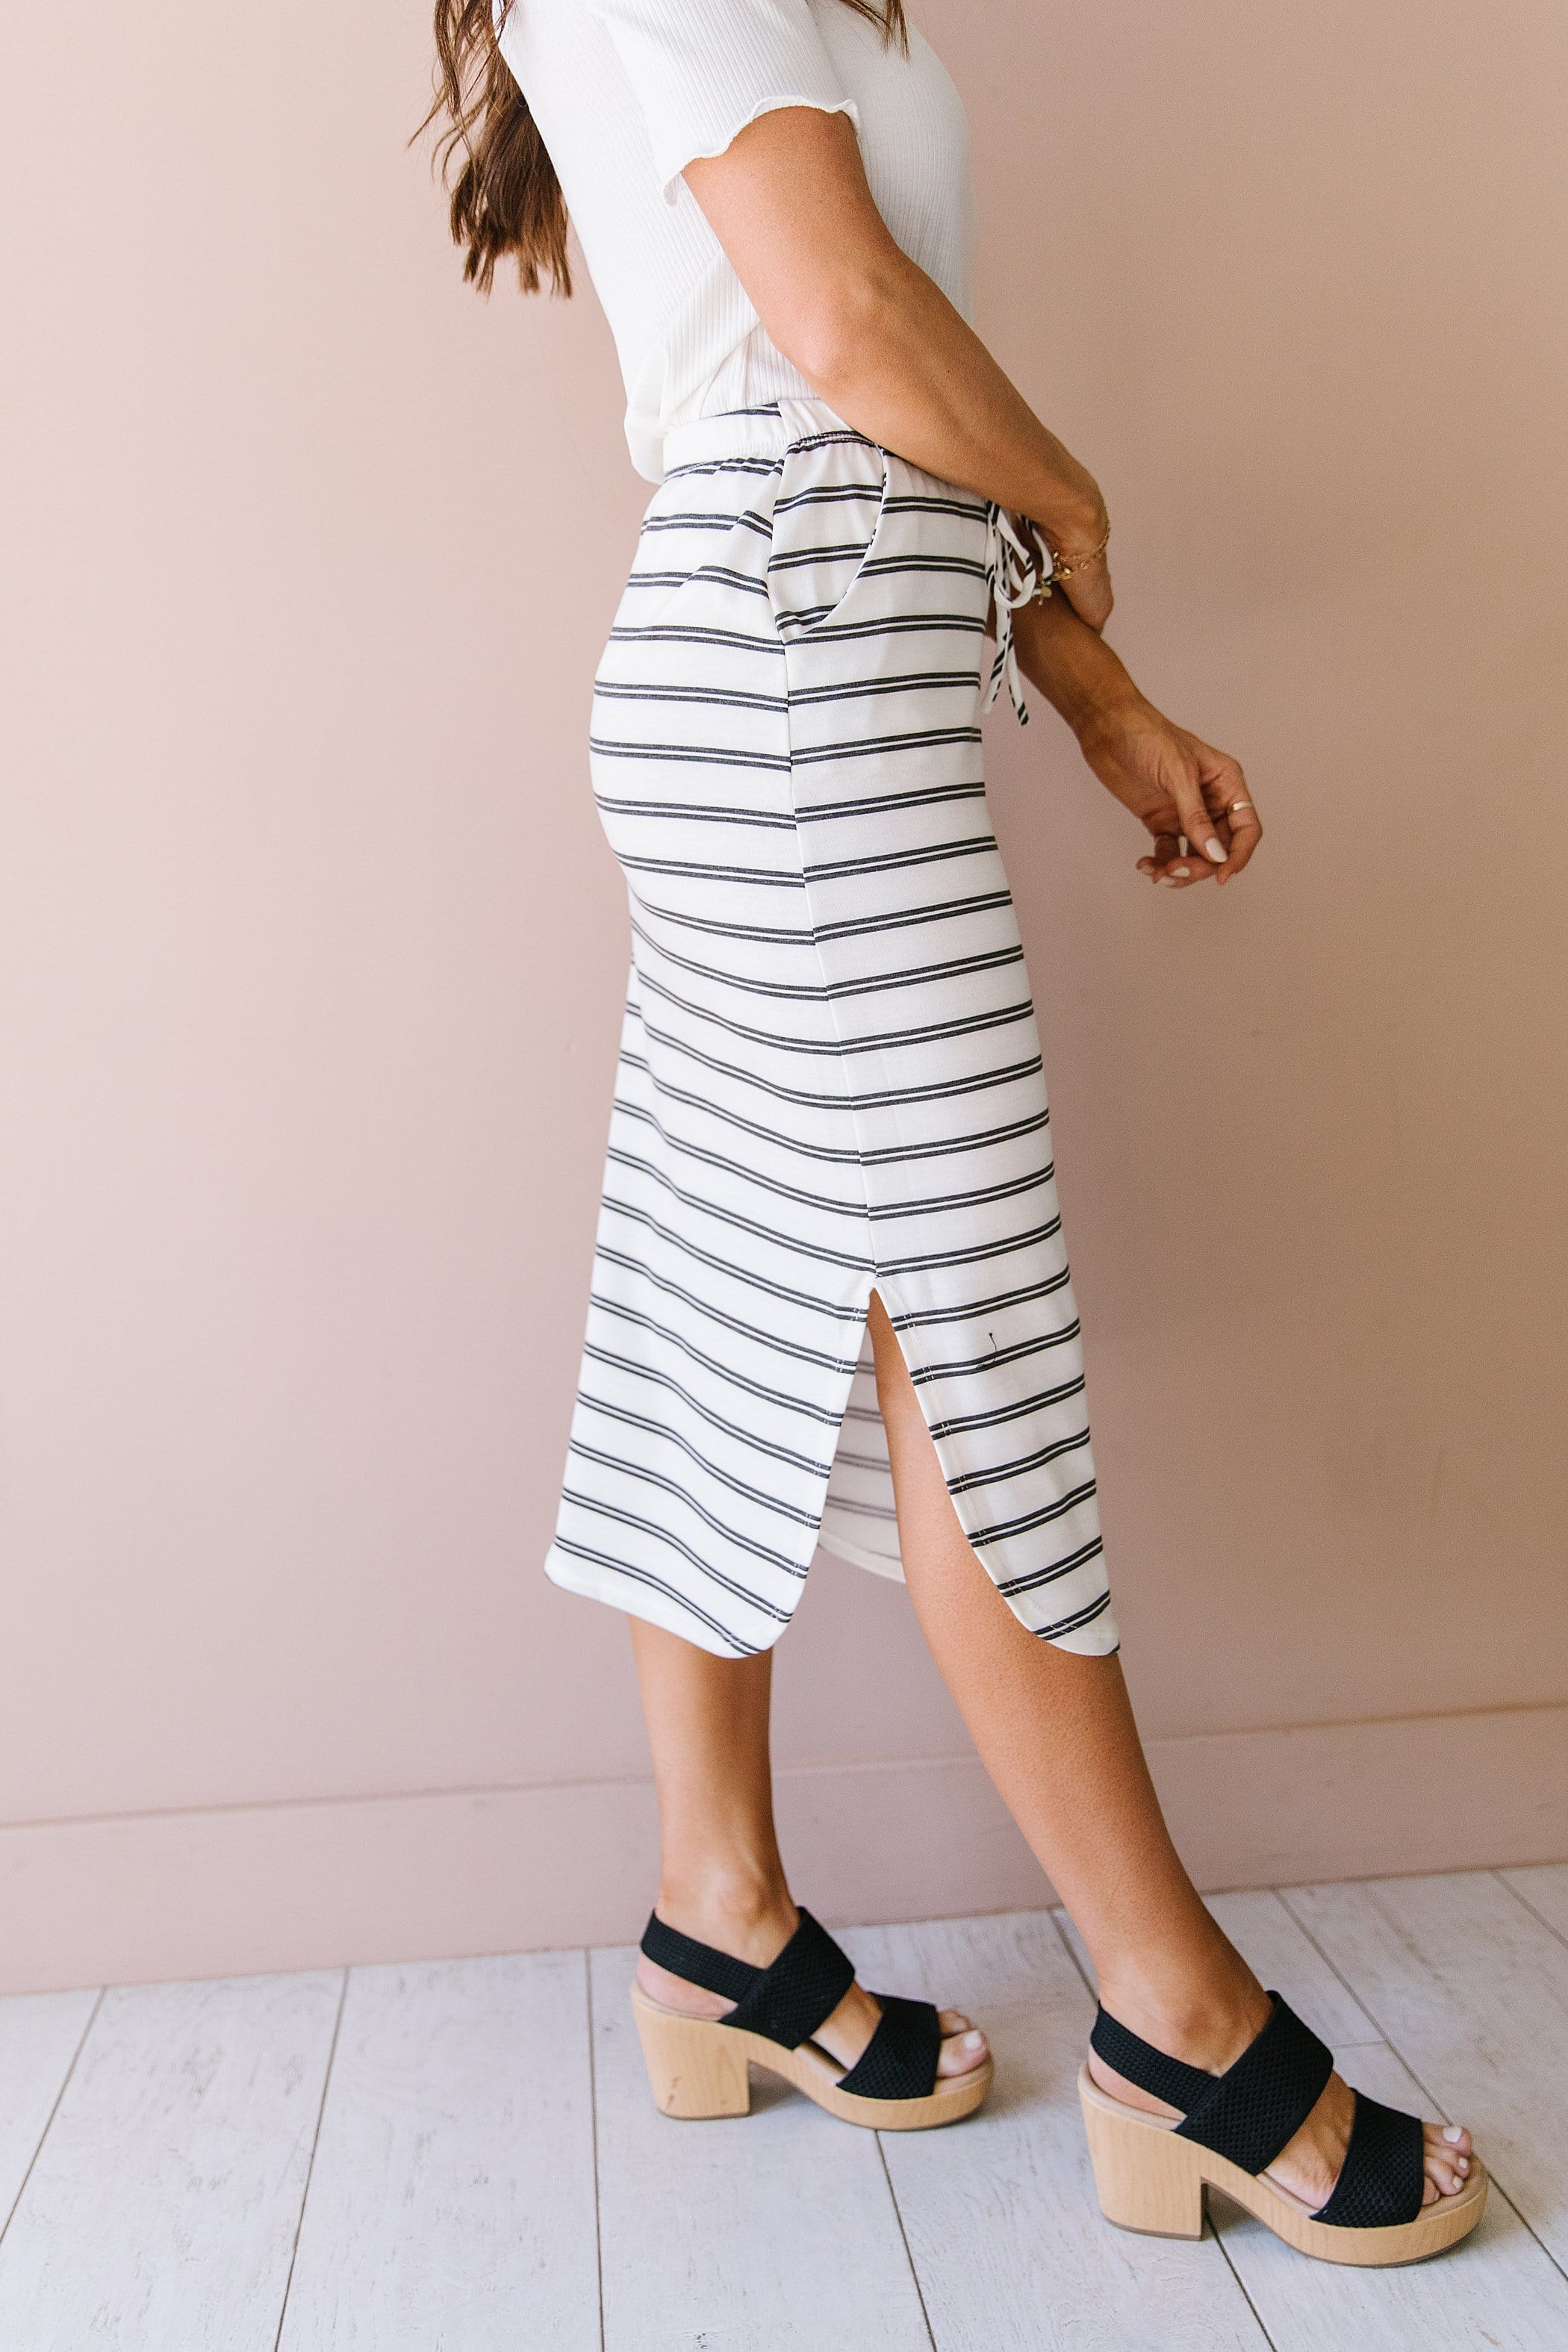 The Lakewood Striped Skirt in Blush and Ivory